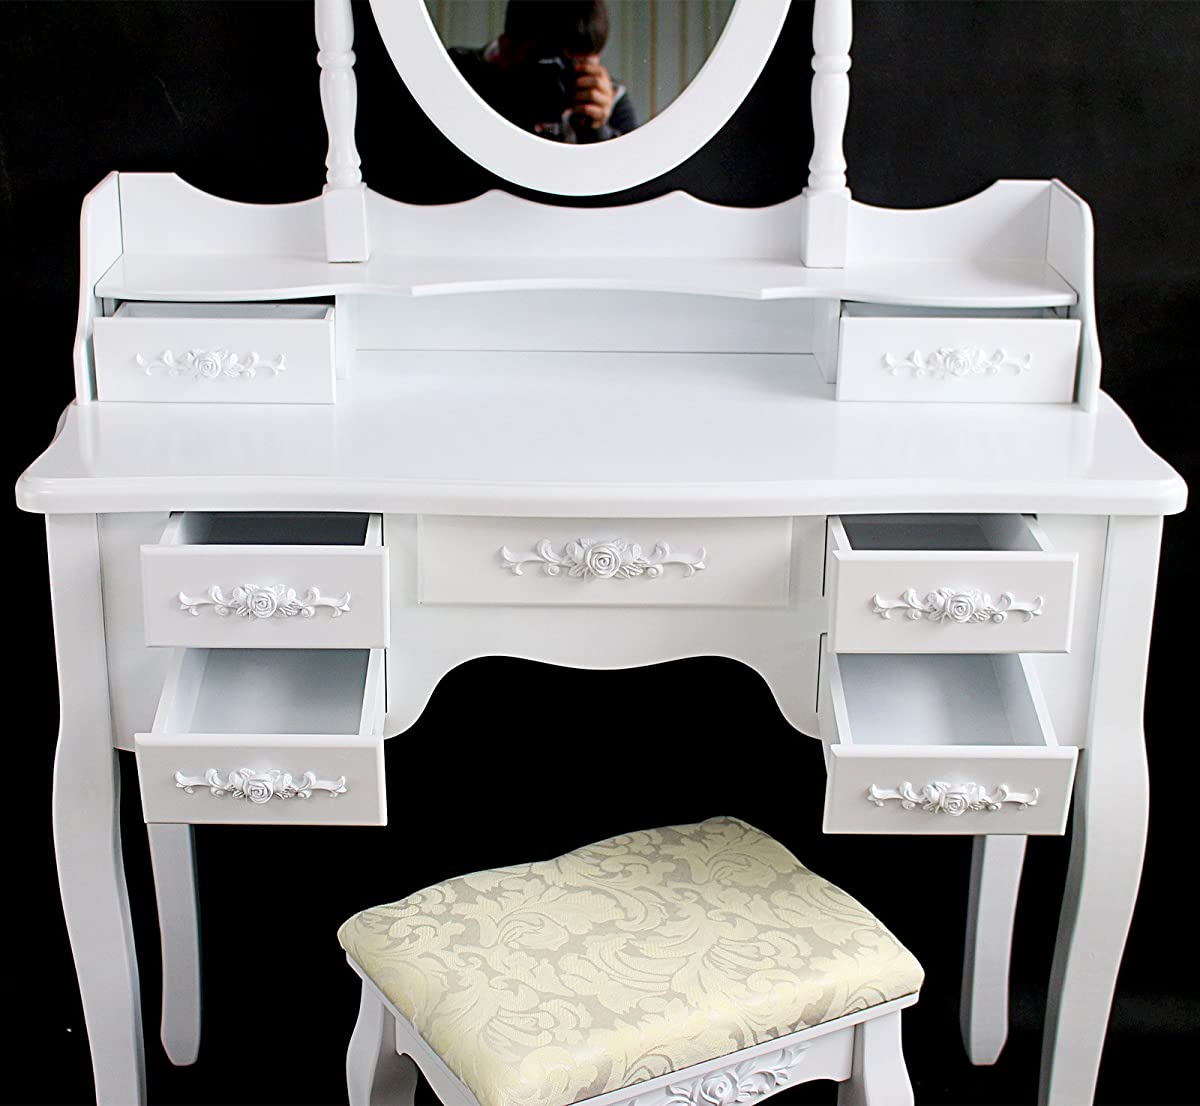 Tribesigns Wood Makeup Vanity Table Set with Mirror and Stool Bedroom Dressing Table Dresser Desk, White